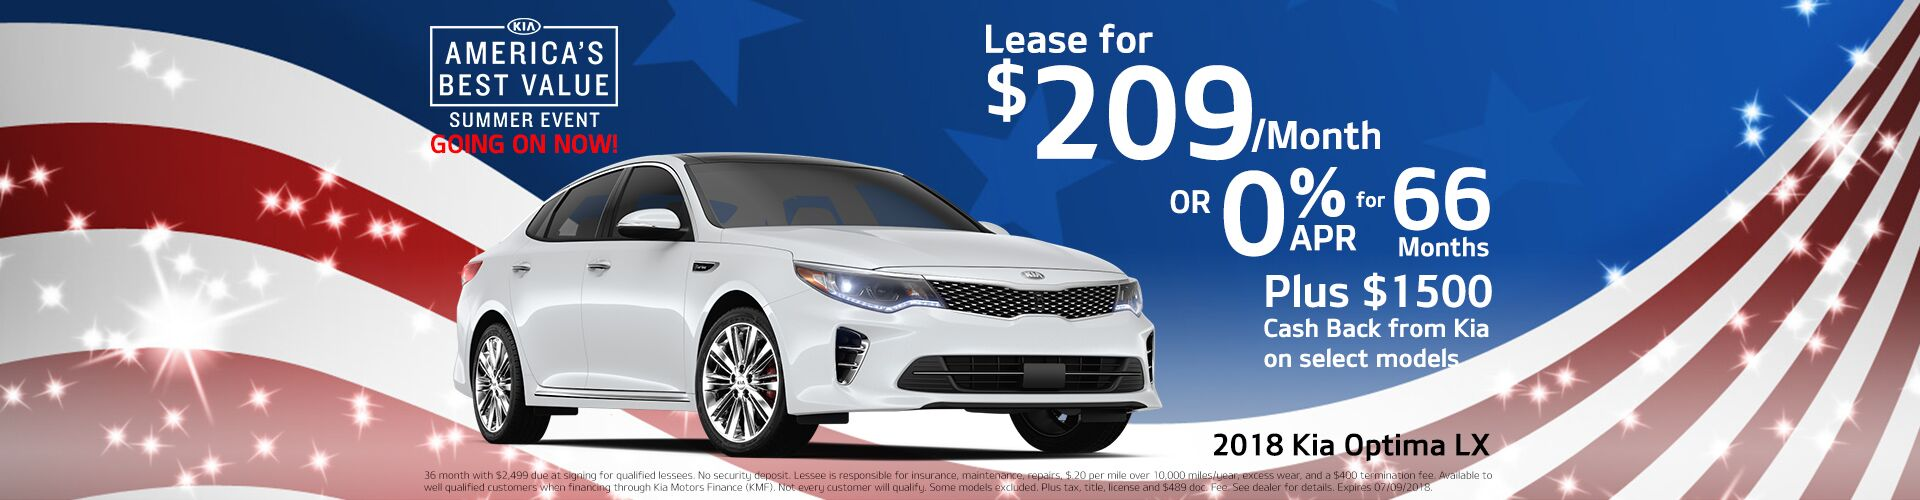 dealer starting a in per fl at sorento sarasota used cars month of kia l sunset new lease